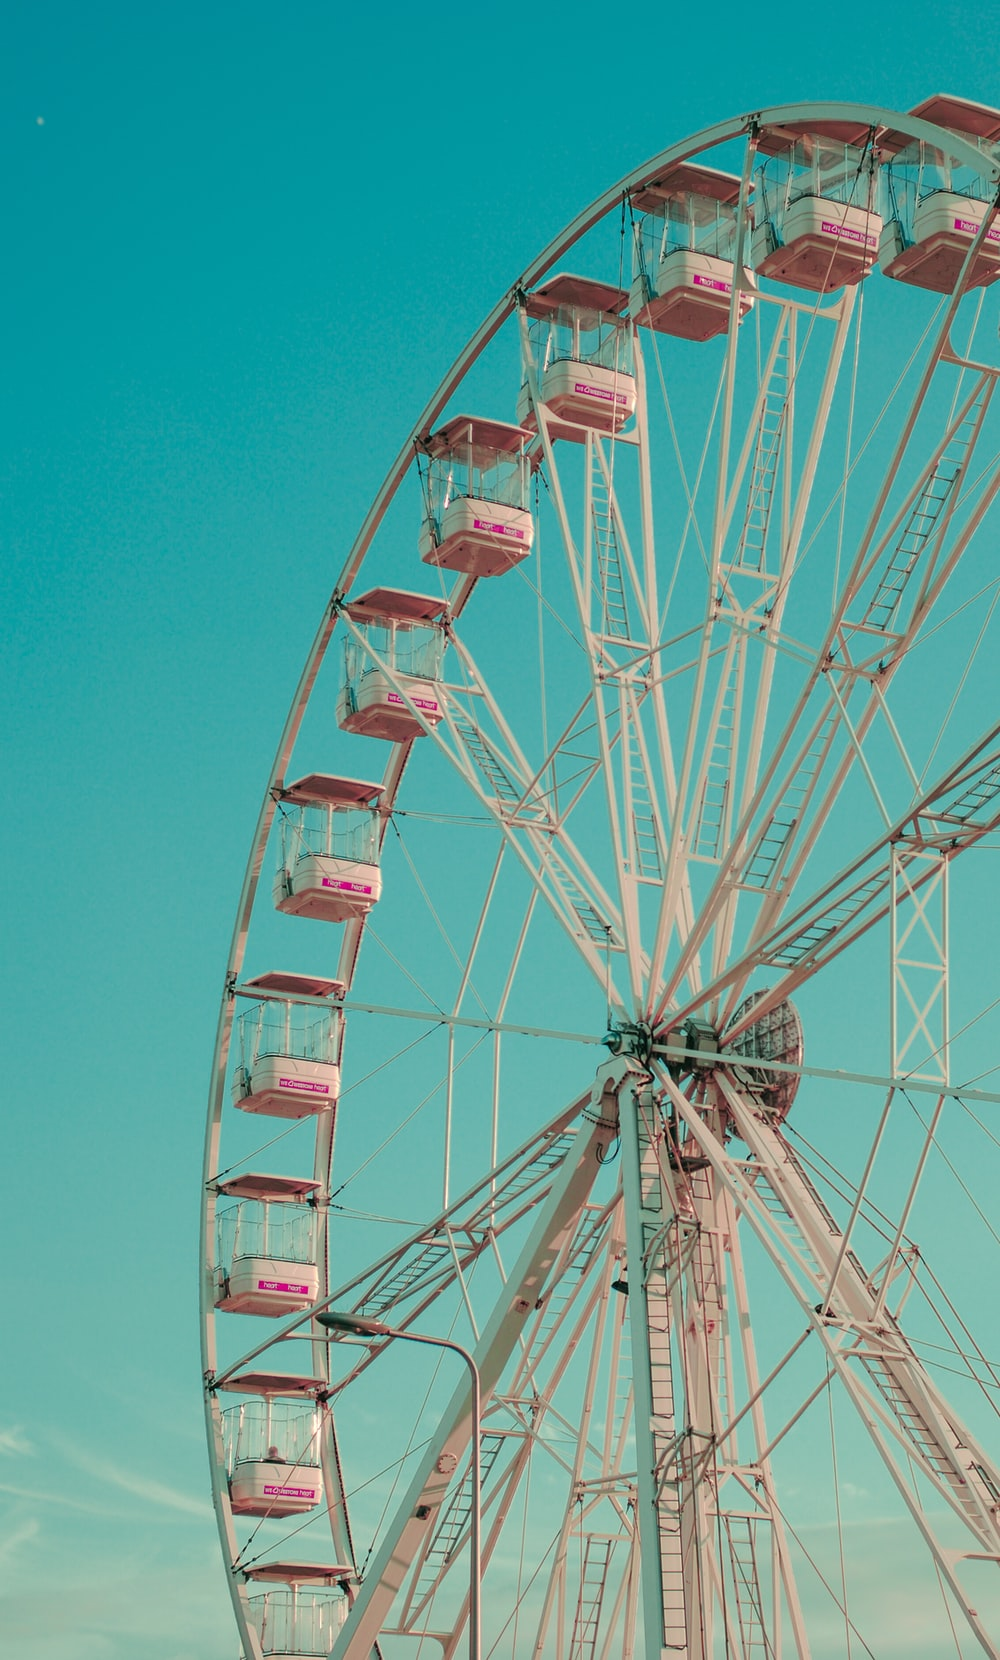 photo of red and white Ferris wheel during daytime